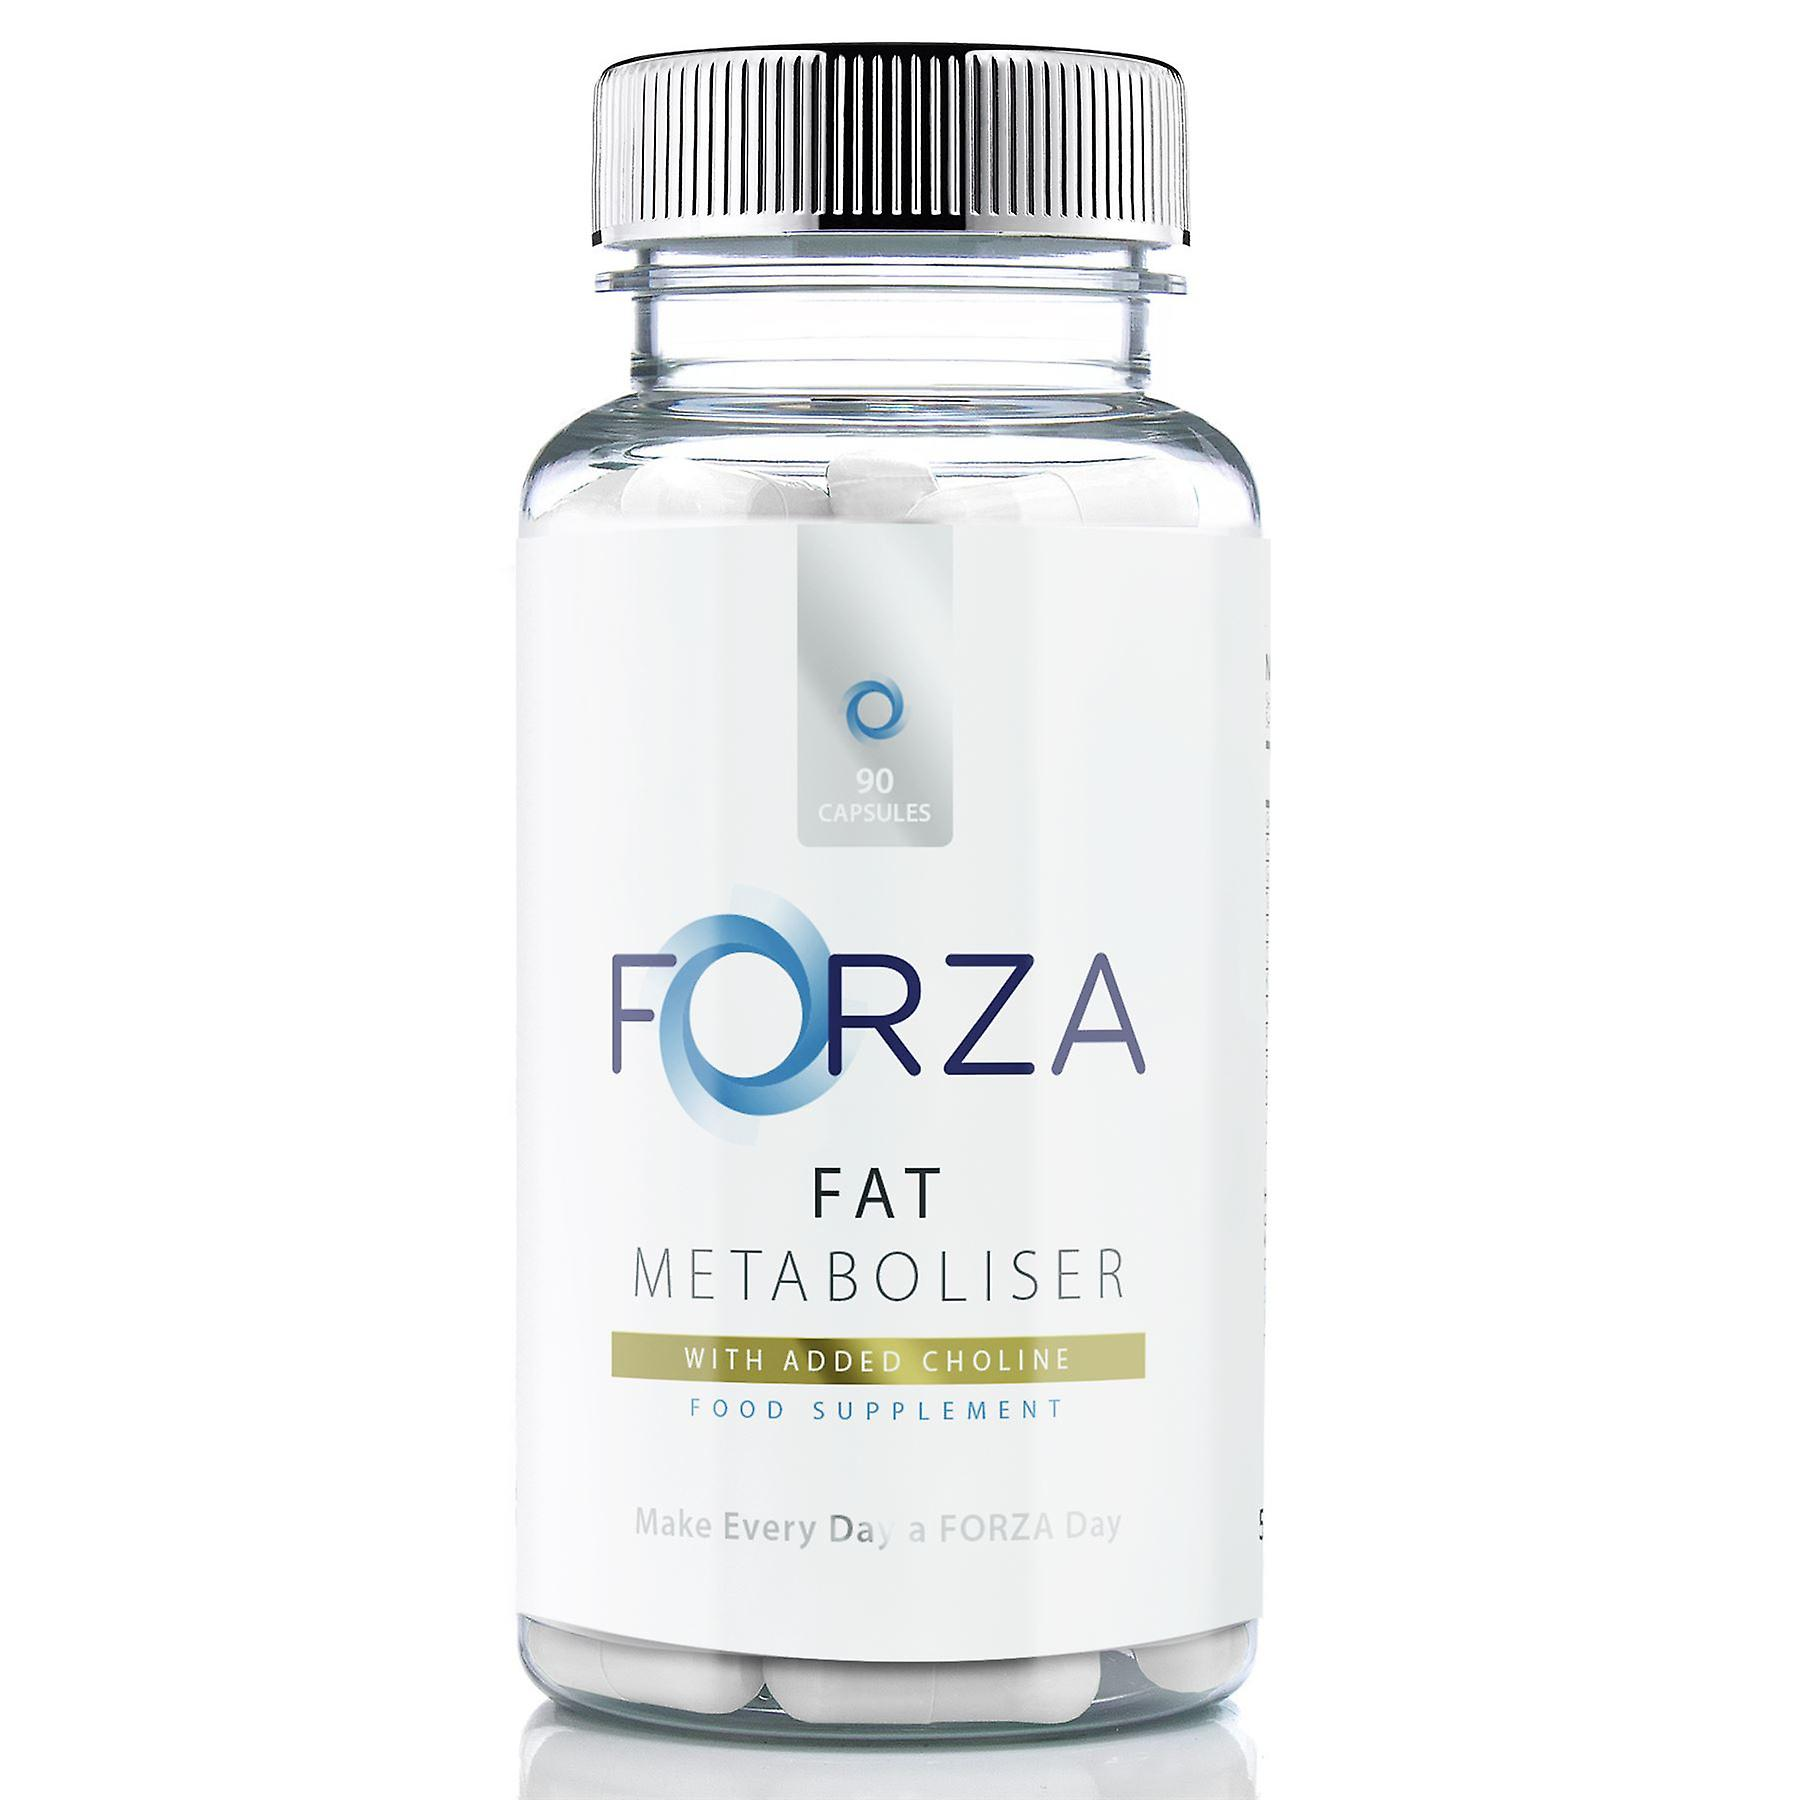 FORZA Fat Metaboliser - 90 Capsules